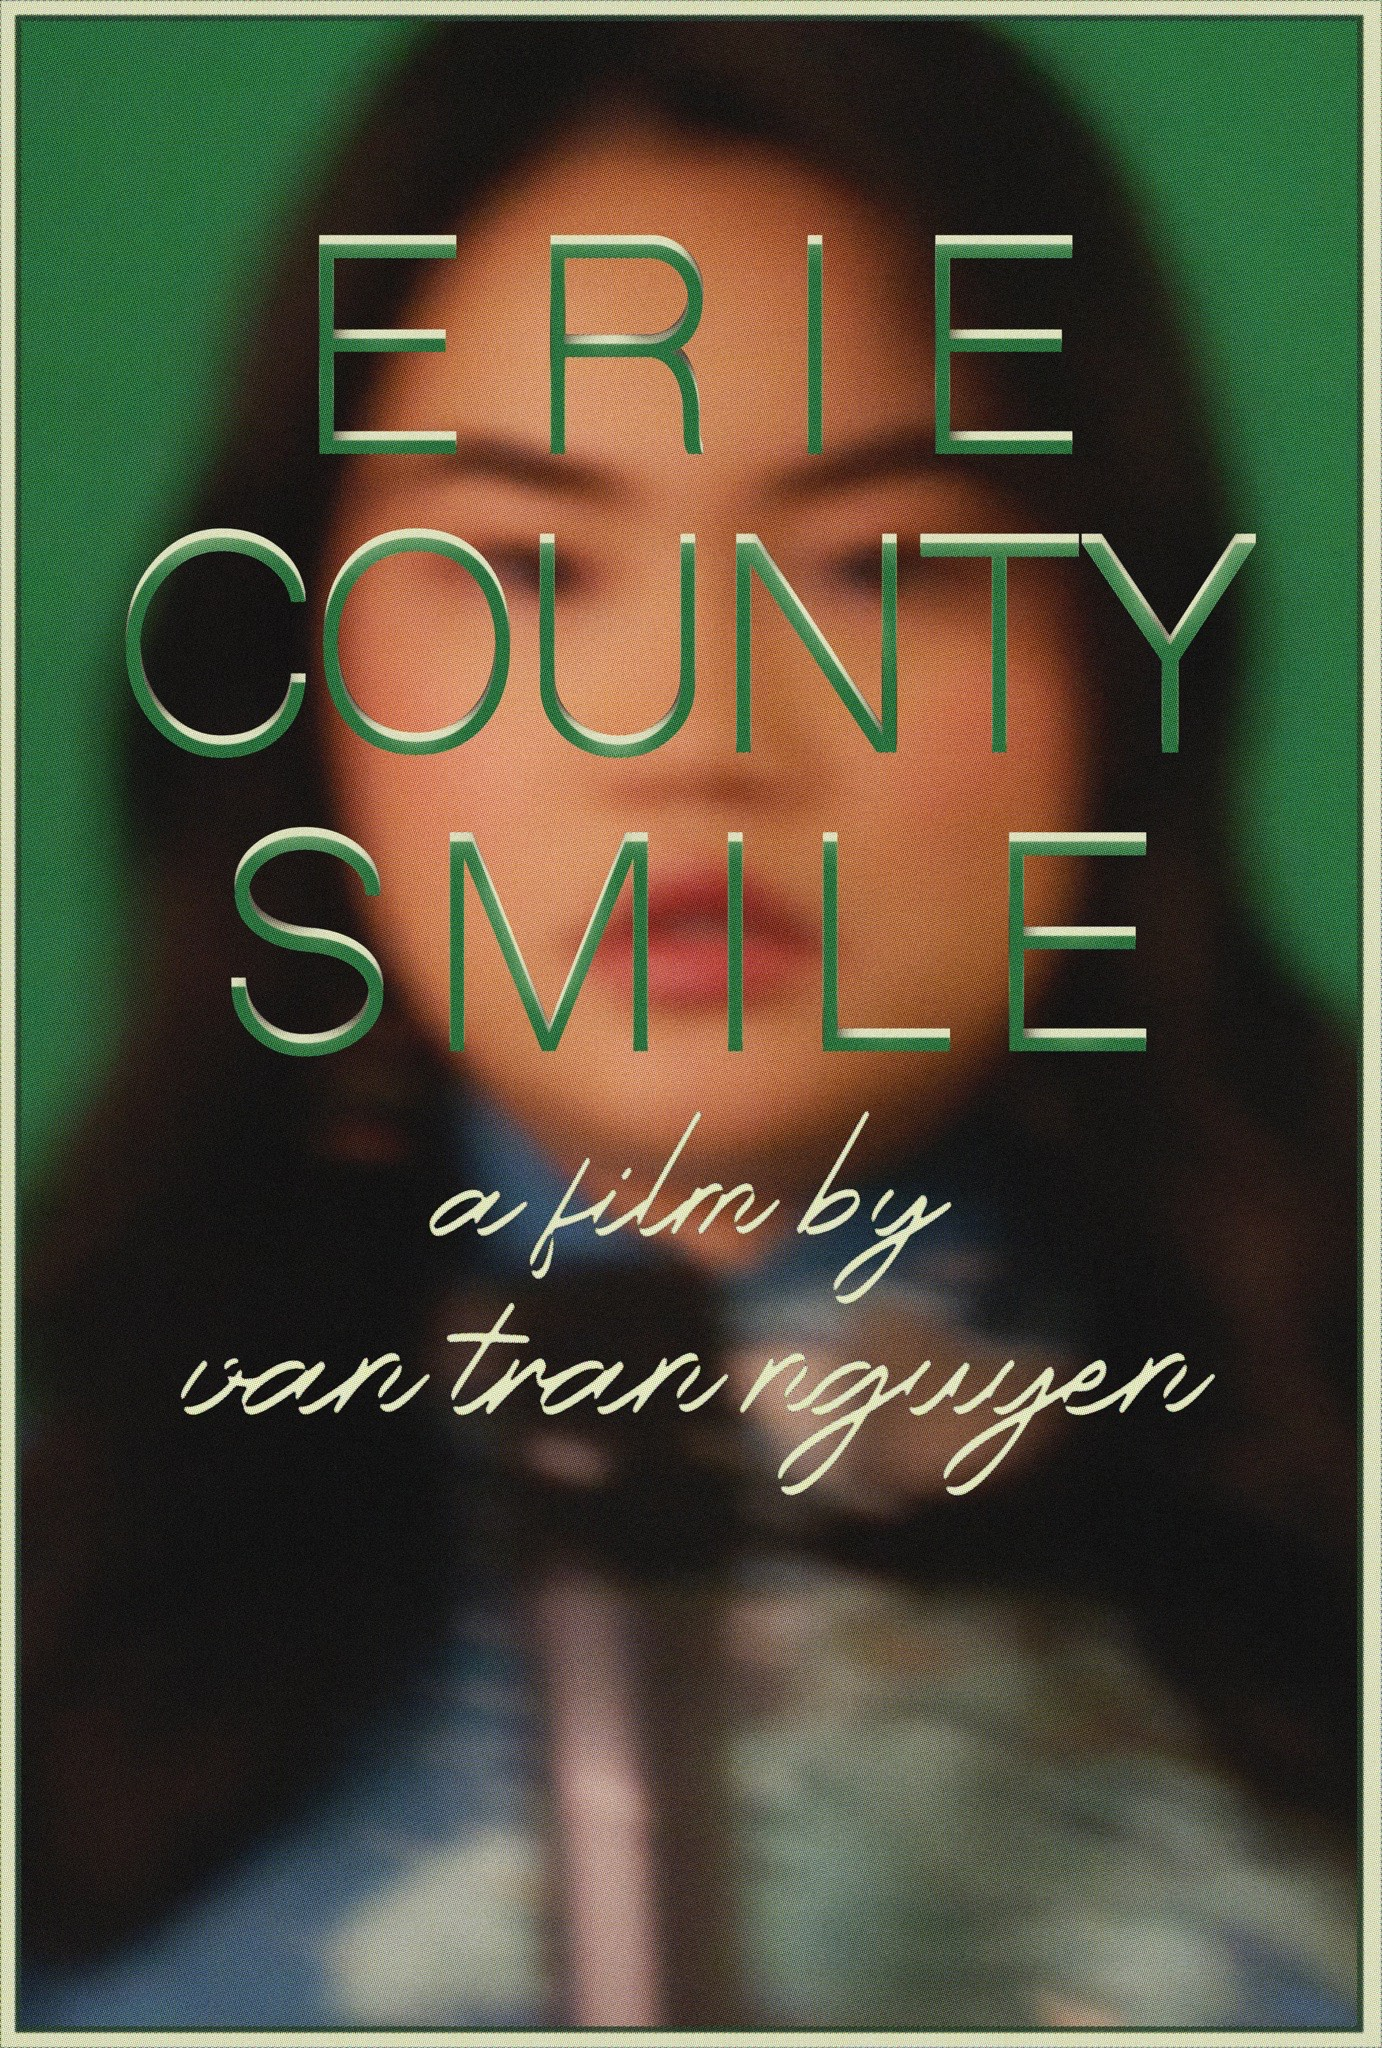 n.1 Erie County Smile